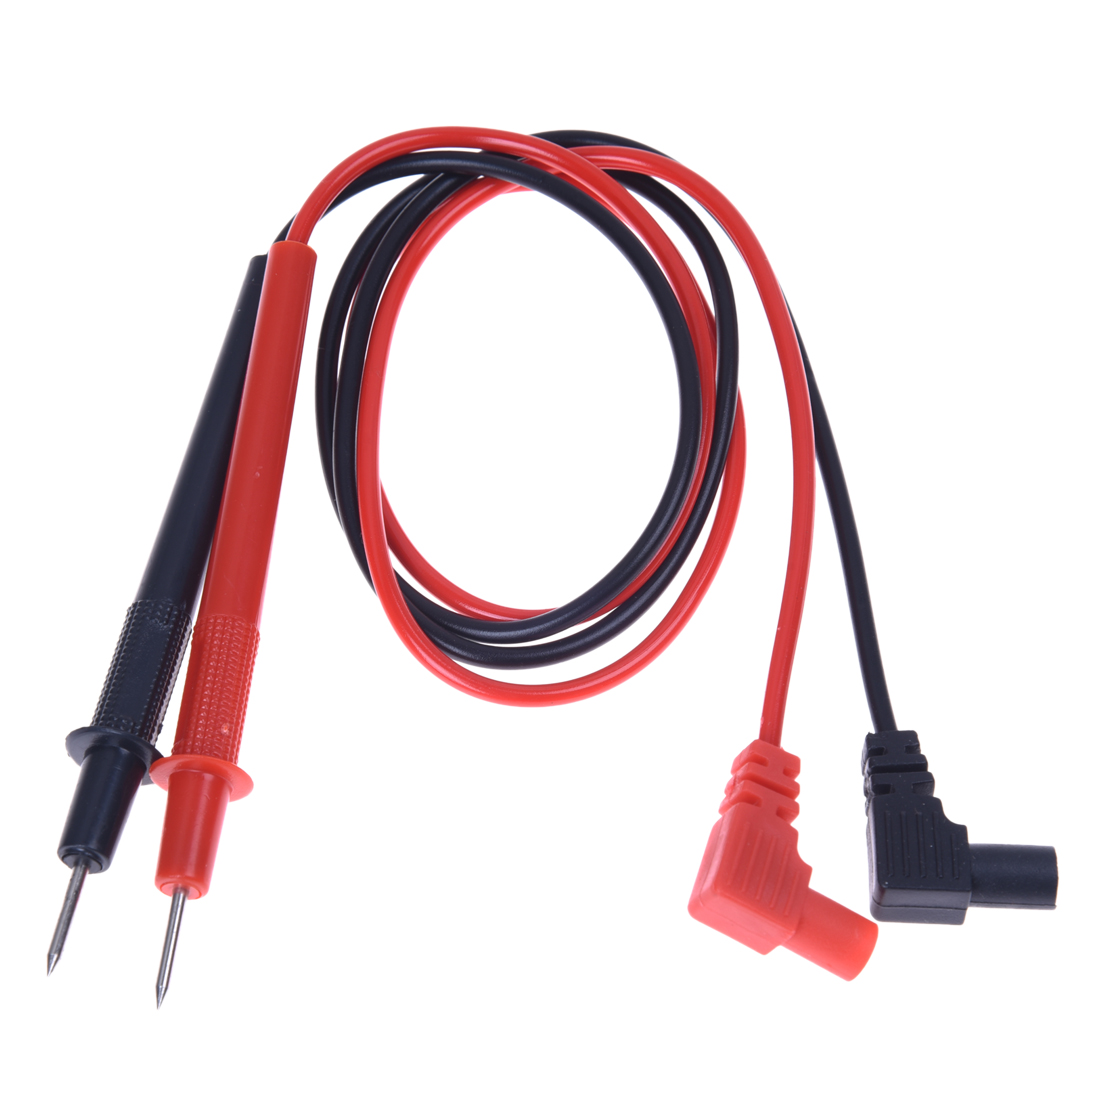 1 Pair 28 anti-slip grip Multimeter Test Leads Black and Red wires probes digital multimeter feelers for multimeter wire tips tungfull multimetros multimeter test leads probes cooper wires test lead wire probe cable for ac dc lcd digital multimeters